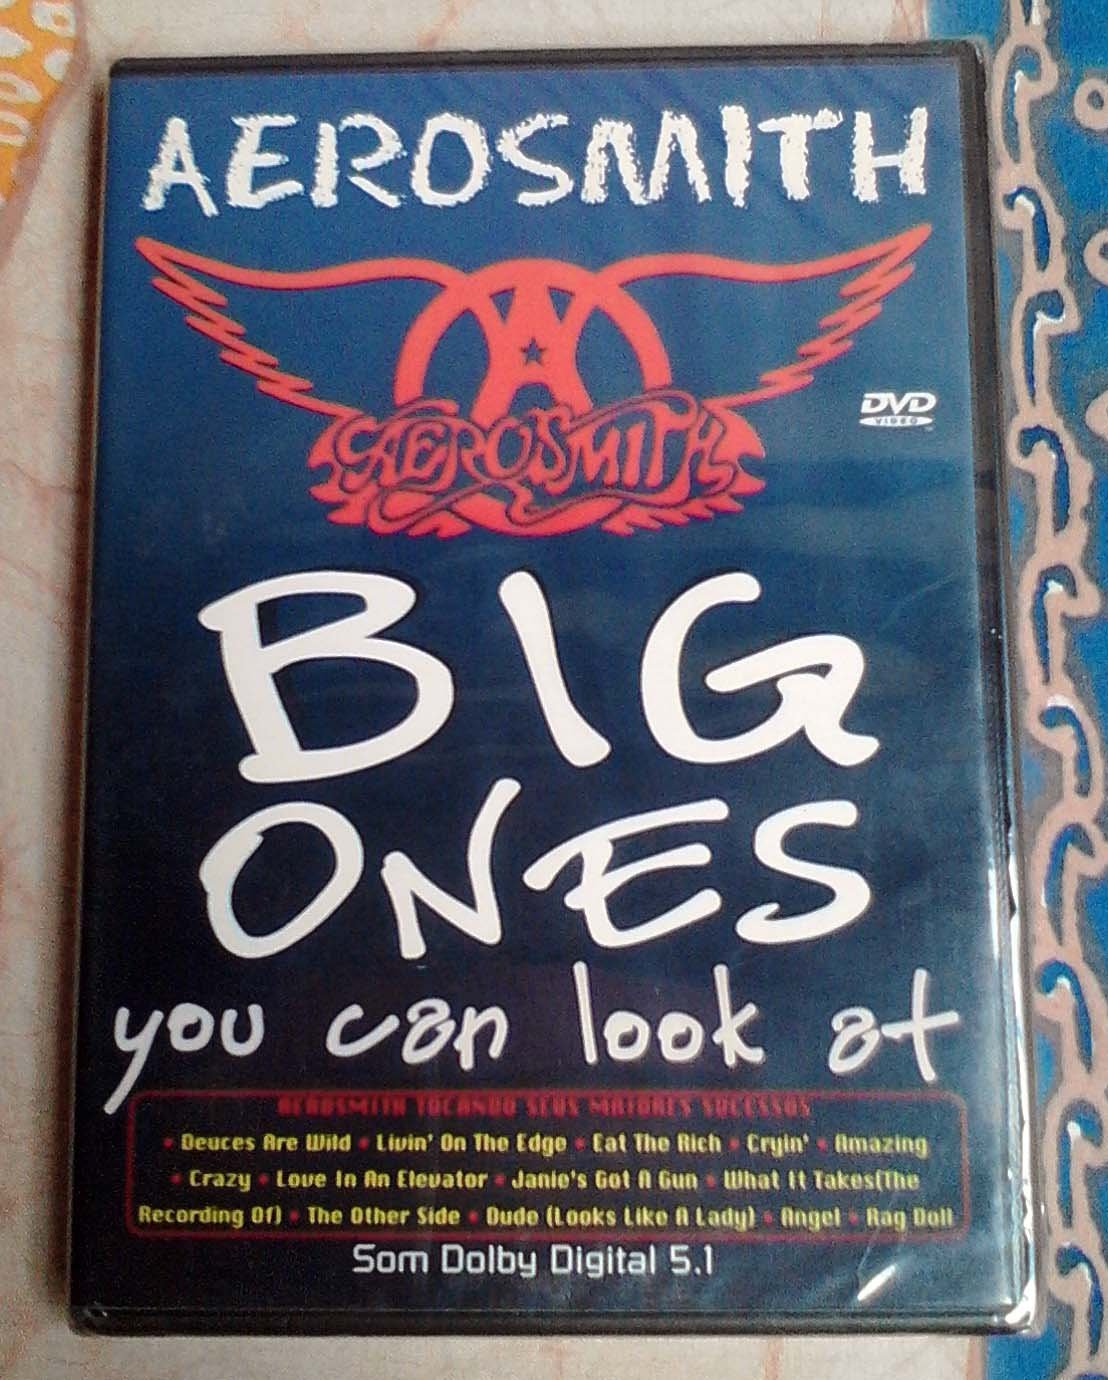 Aerosmith Big Ones You Can Look At DVD